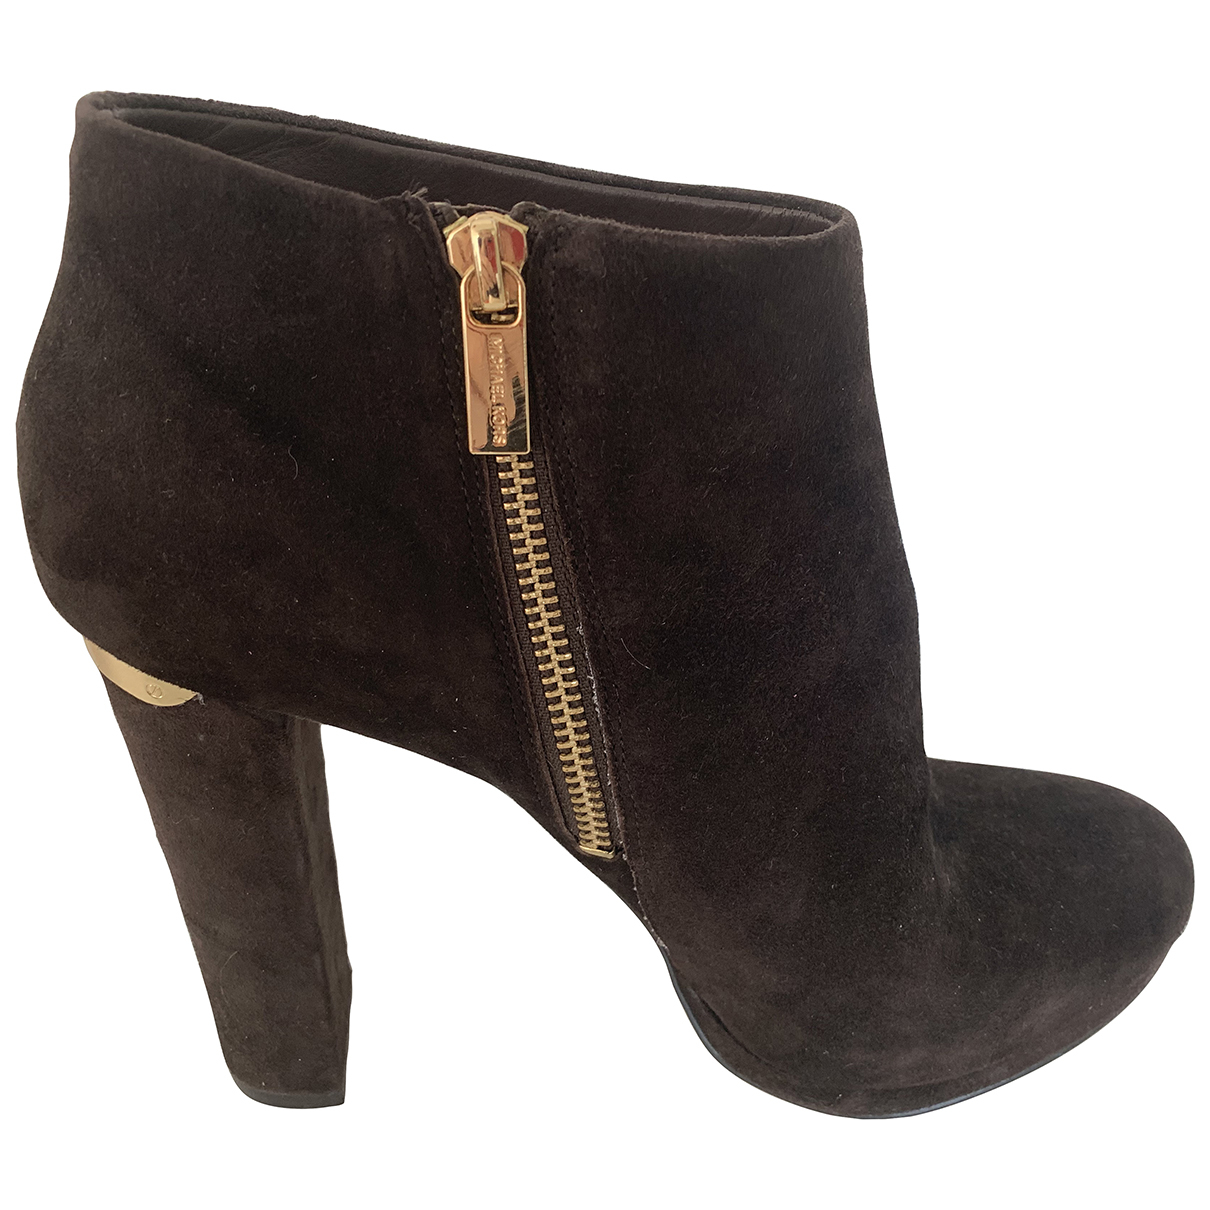 Michael Kors \N Brown Suede Boots for Women 9.5 US